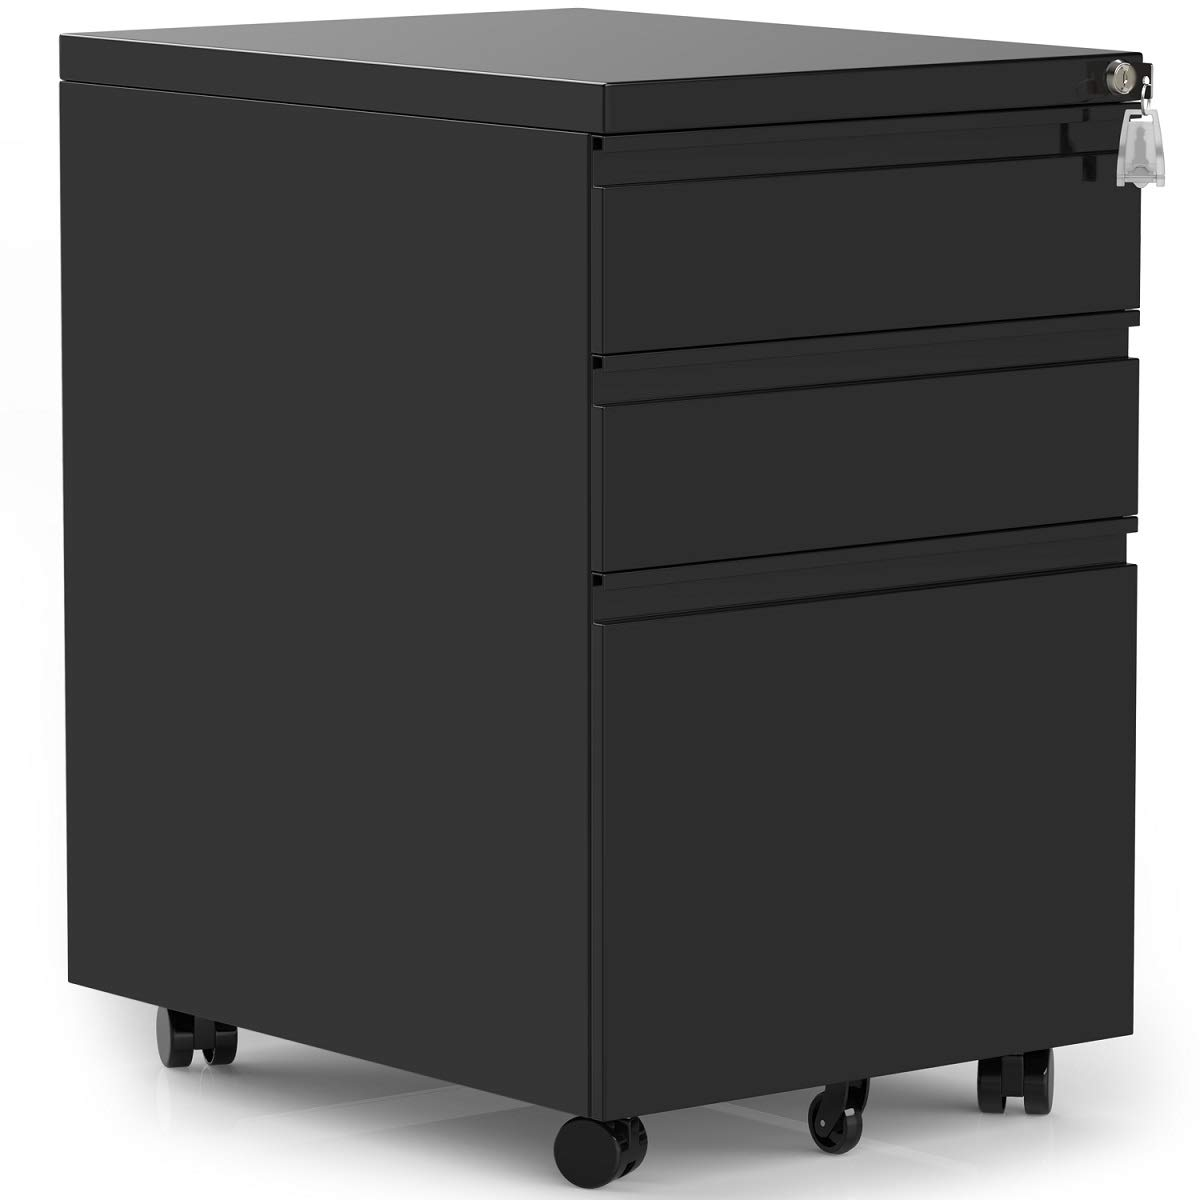 Modern Luxe 3 Drawers Mobile File Cabinet with Lock, Black File Cabinet with Wheels, Fully Assembled